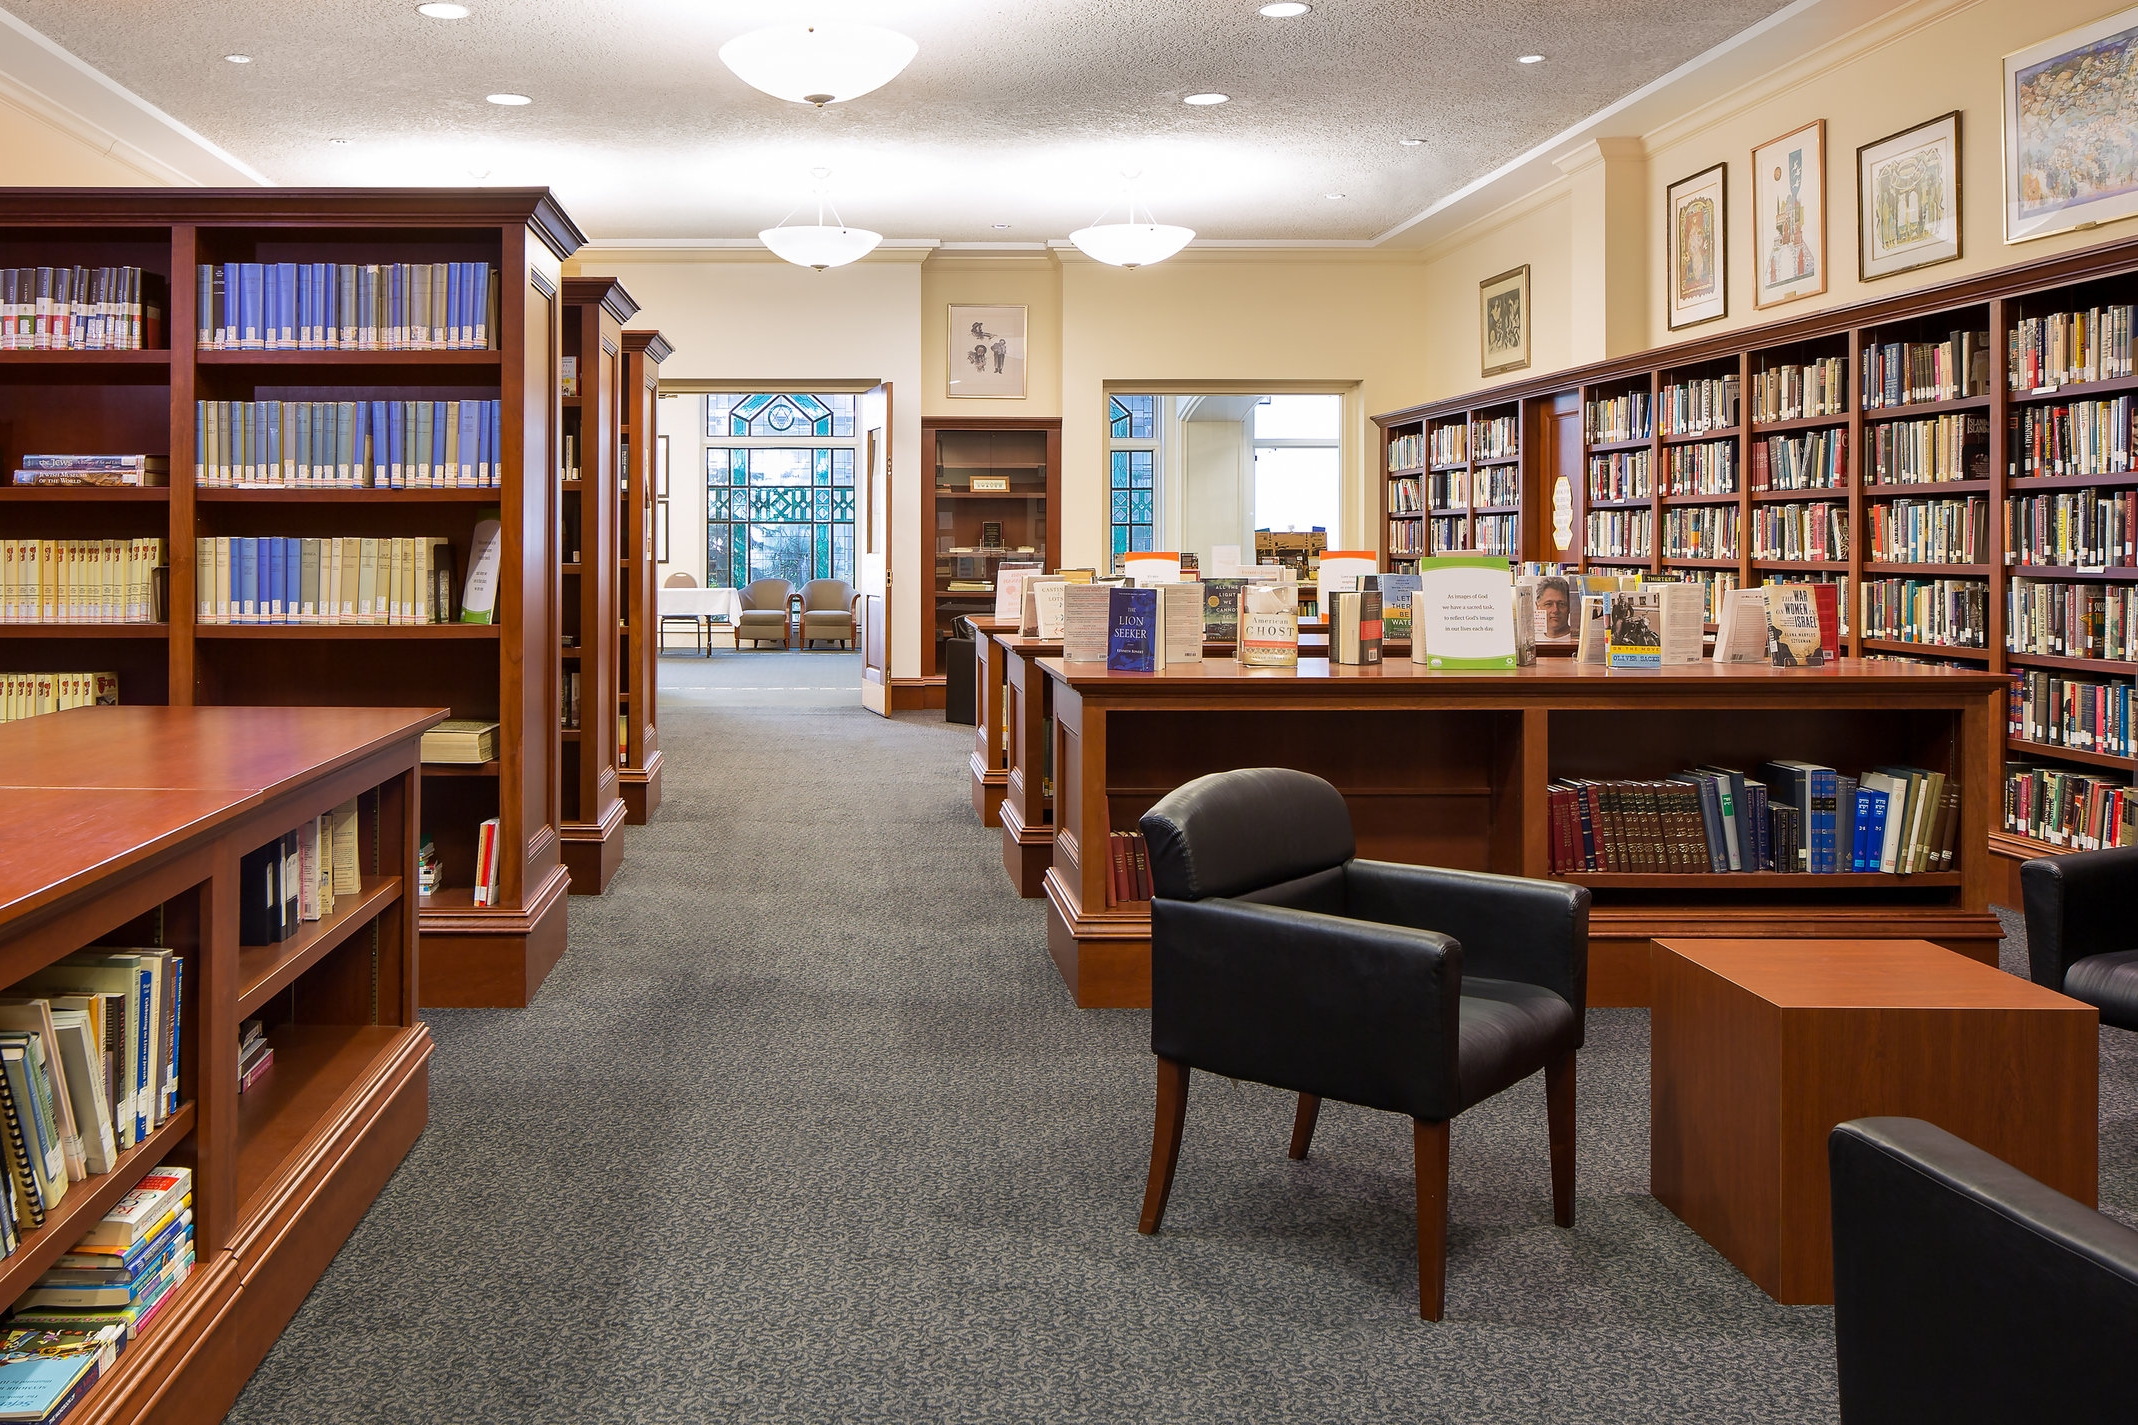 Lippman Library:  used for round table discussions, lectures or meetings for groups up to 40 people. Beverages are permitted.